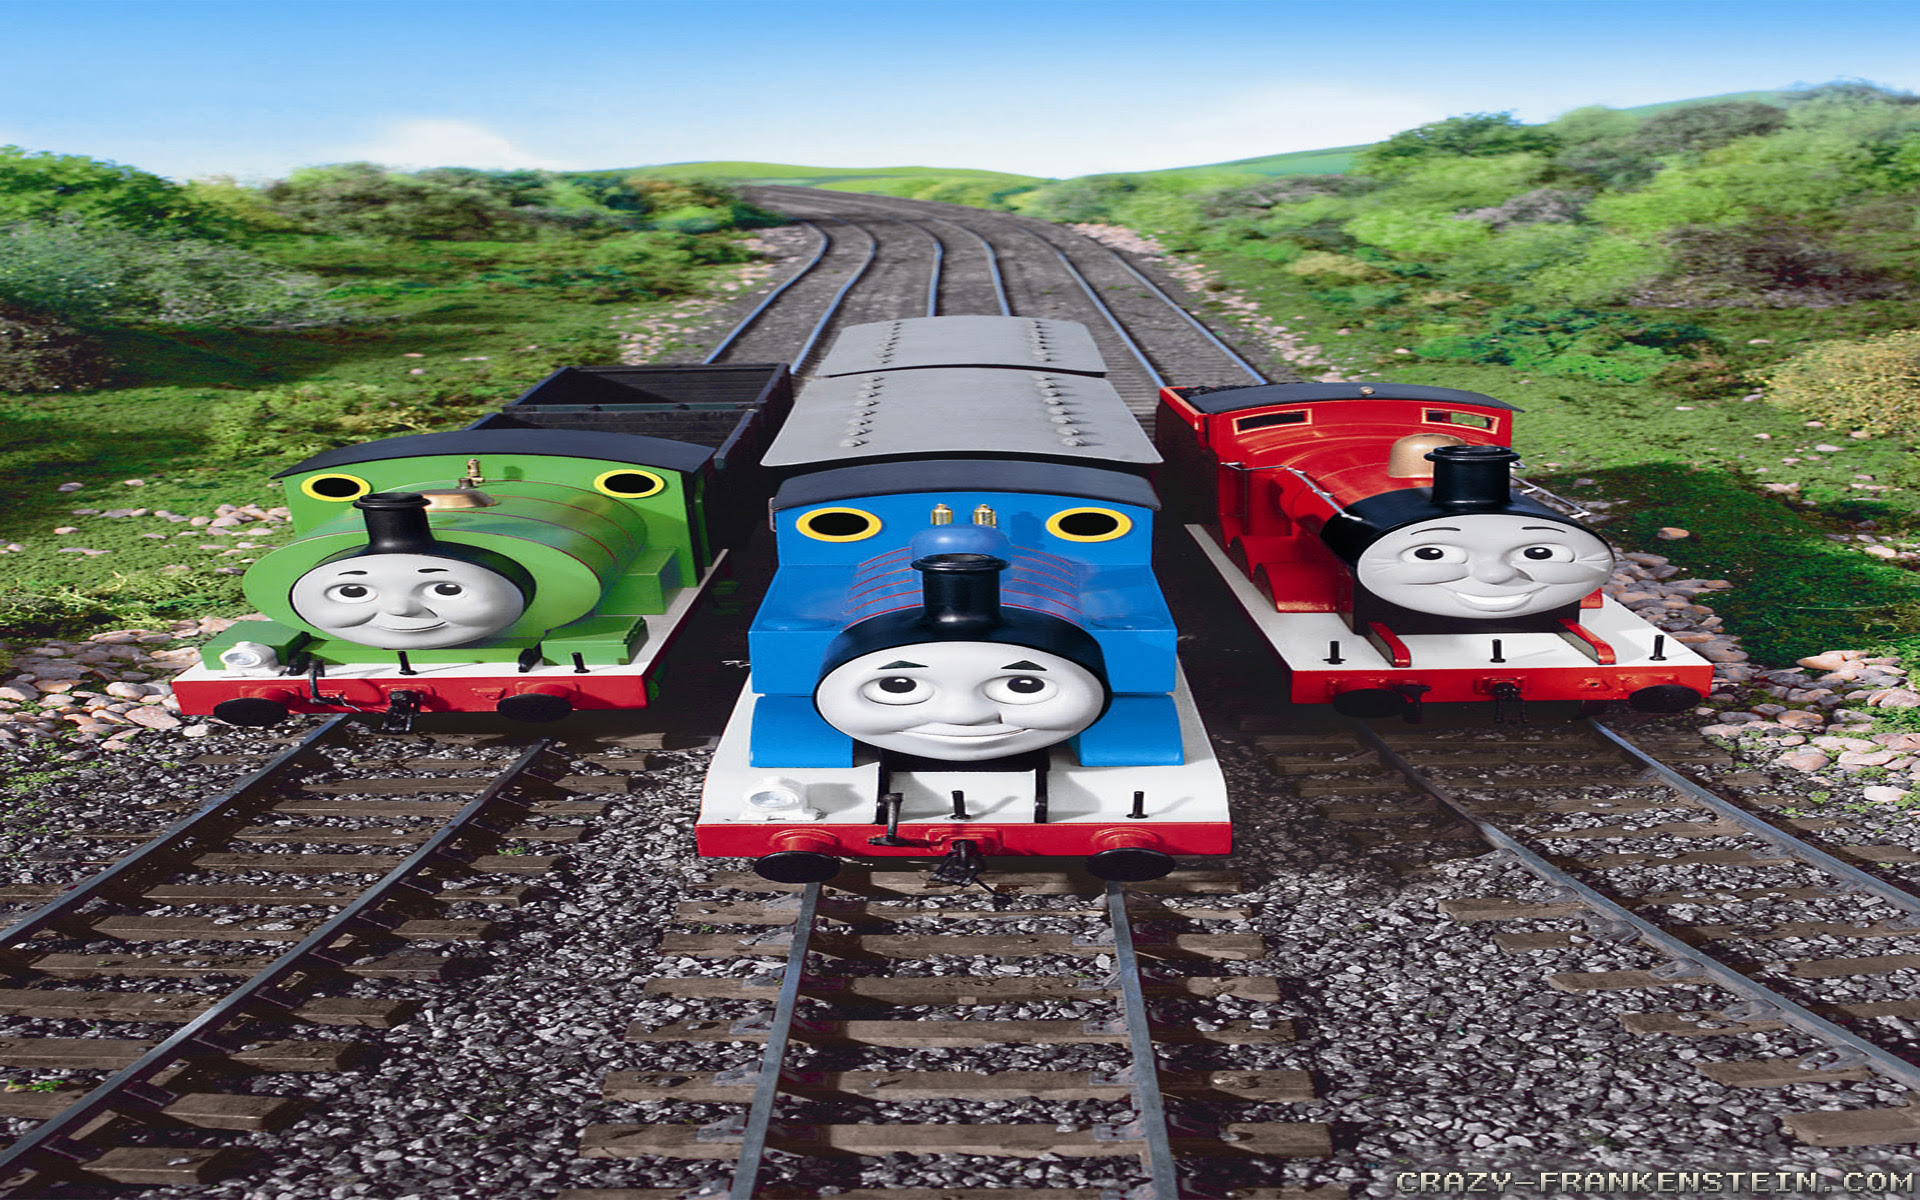 Thomas The Tank Engine Wallpapers Crazy Frankenstein